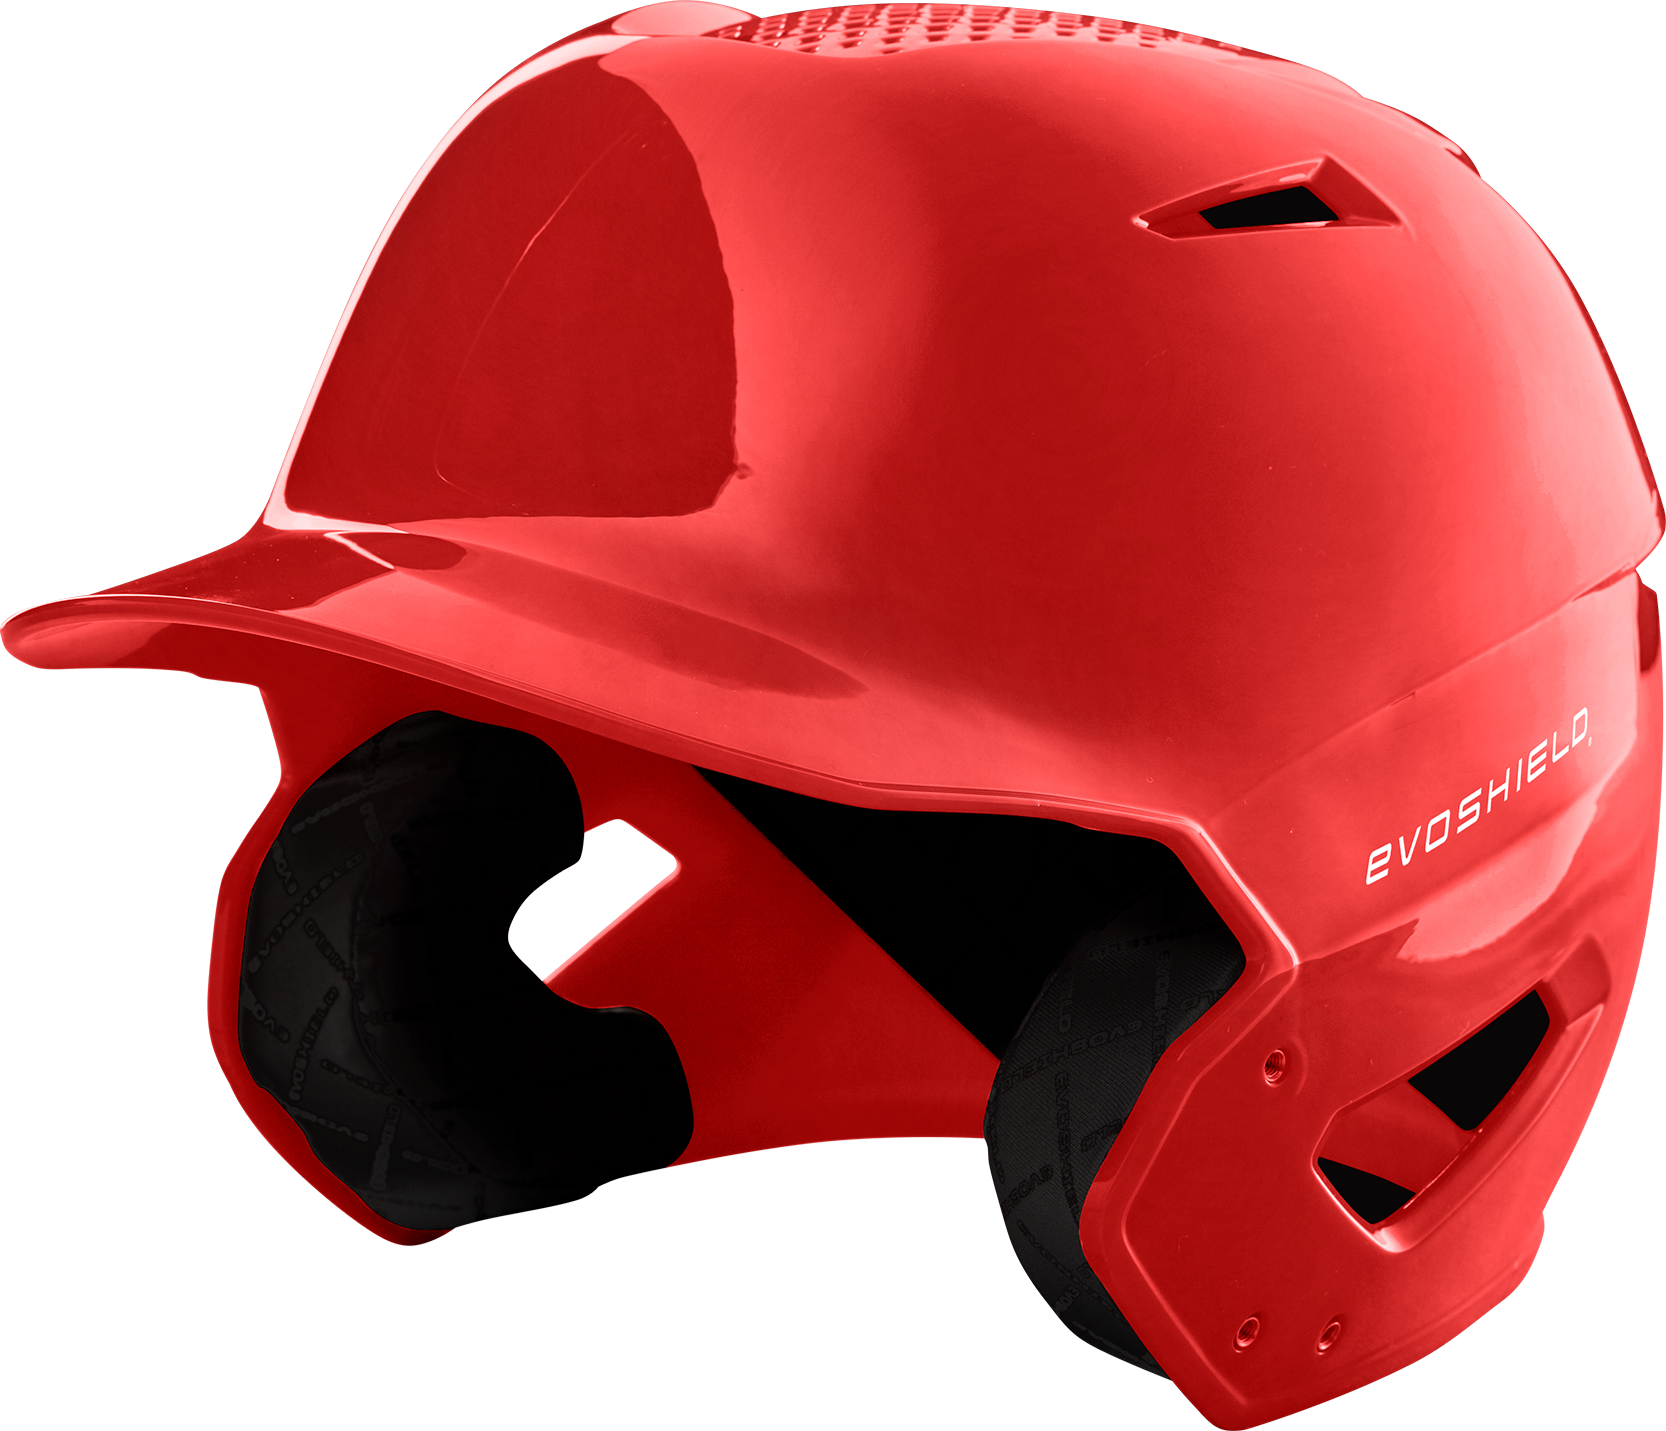 Evoshield Adult XVT Batting Helmet.